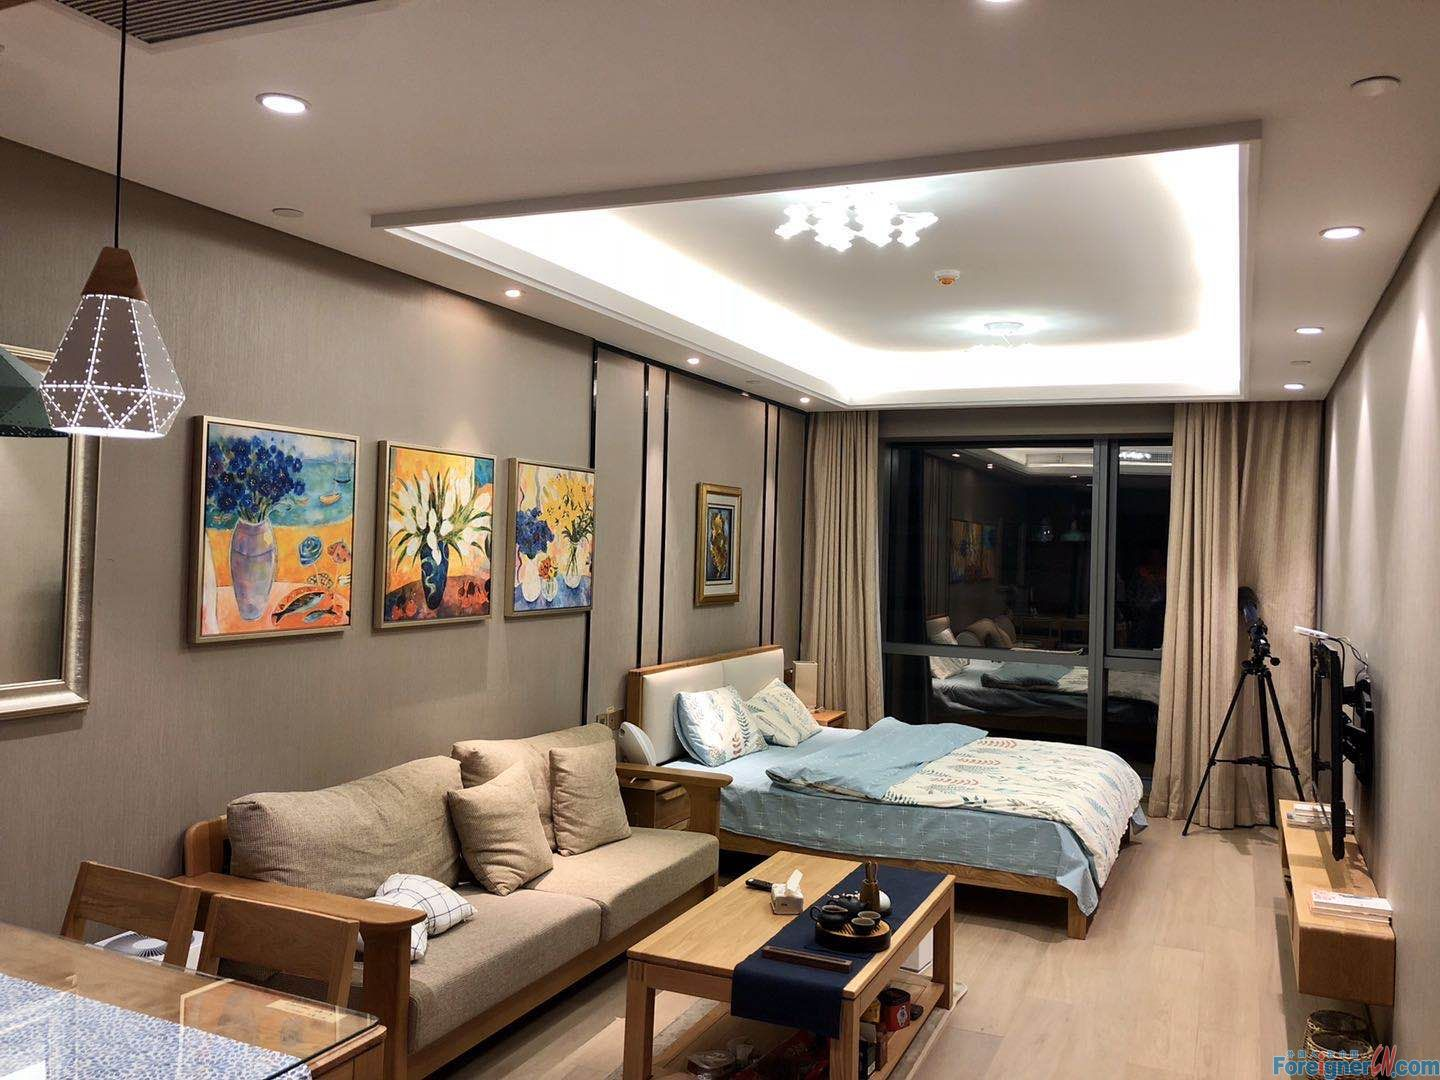 Find an apt in Suzhou-Times Square-1 bdr–elegant decoration-gas stove-cozy- central AC-convenient traffic